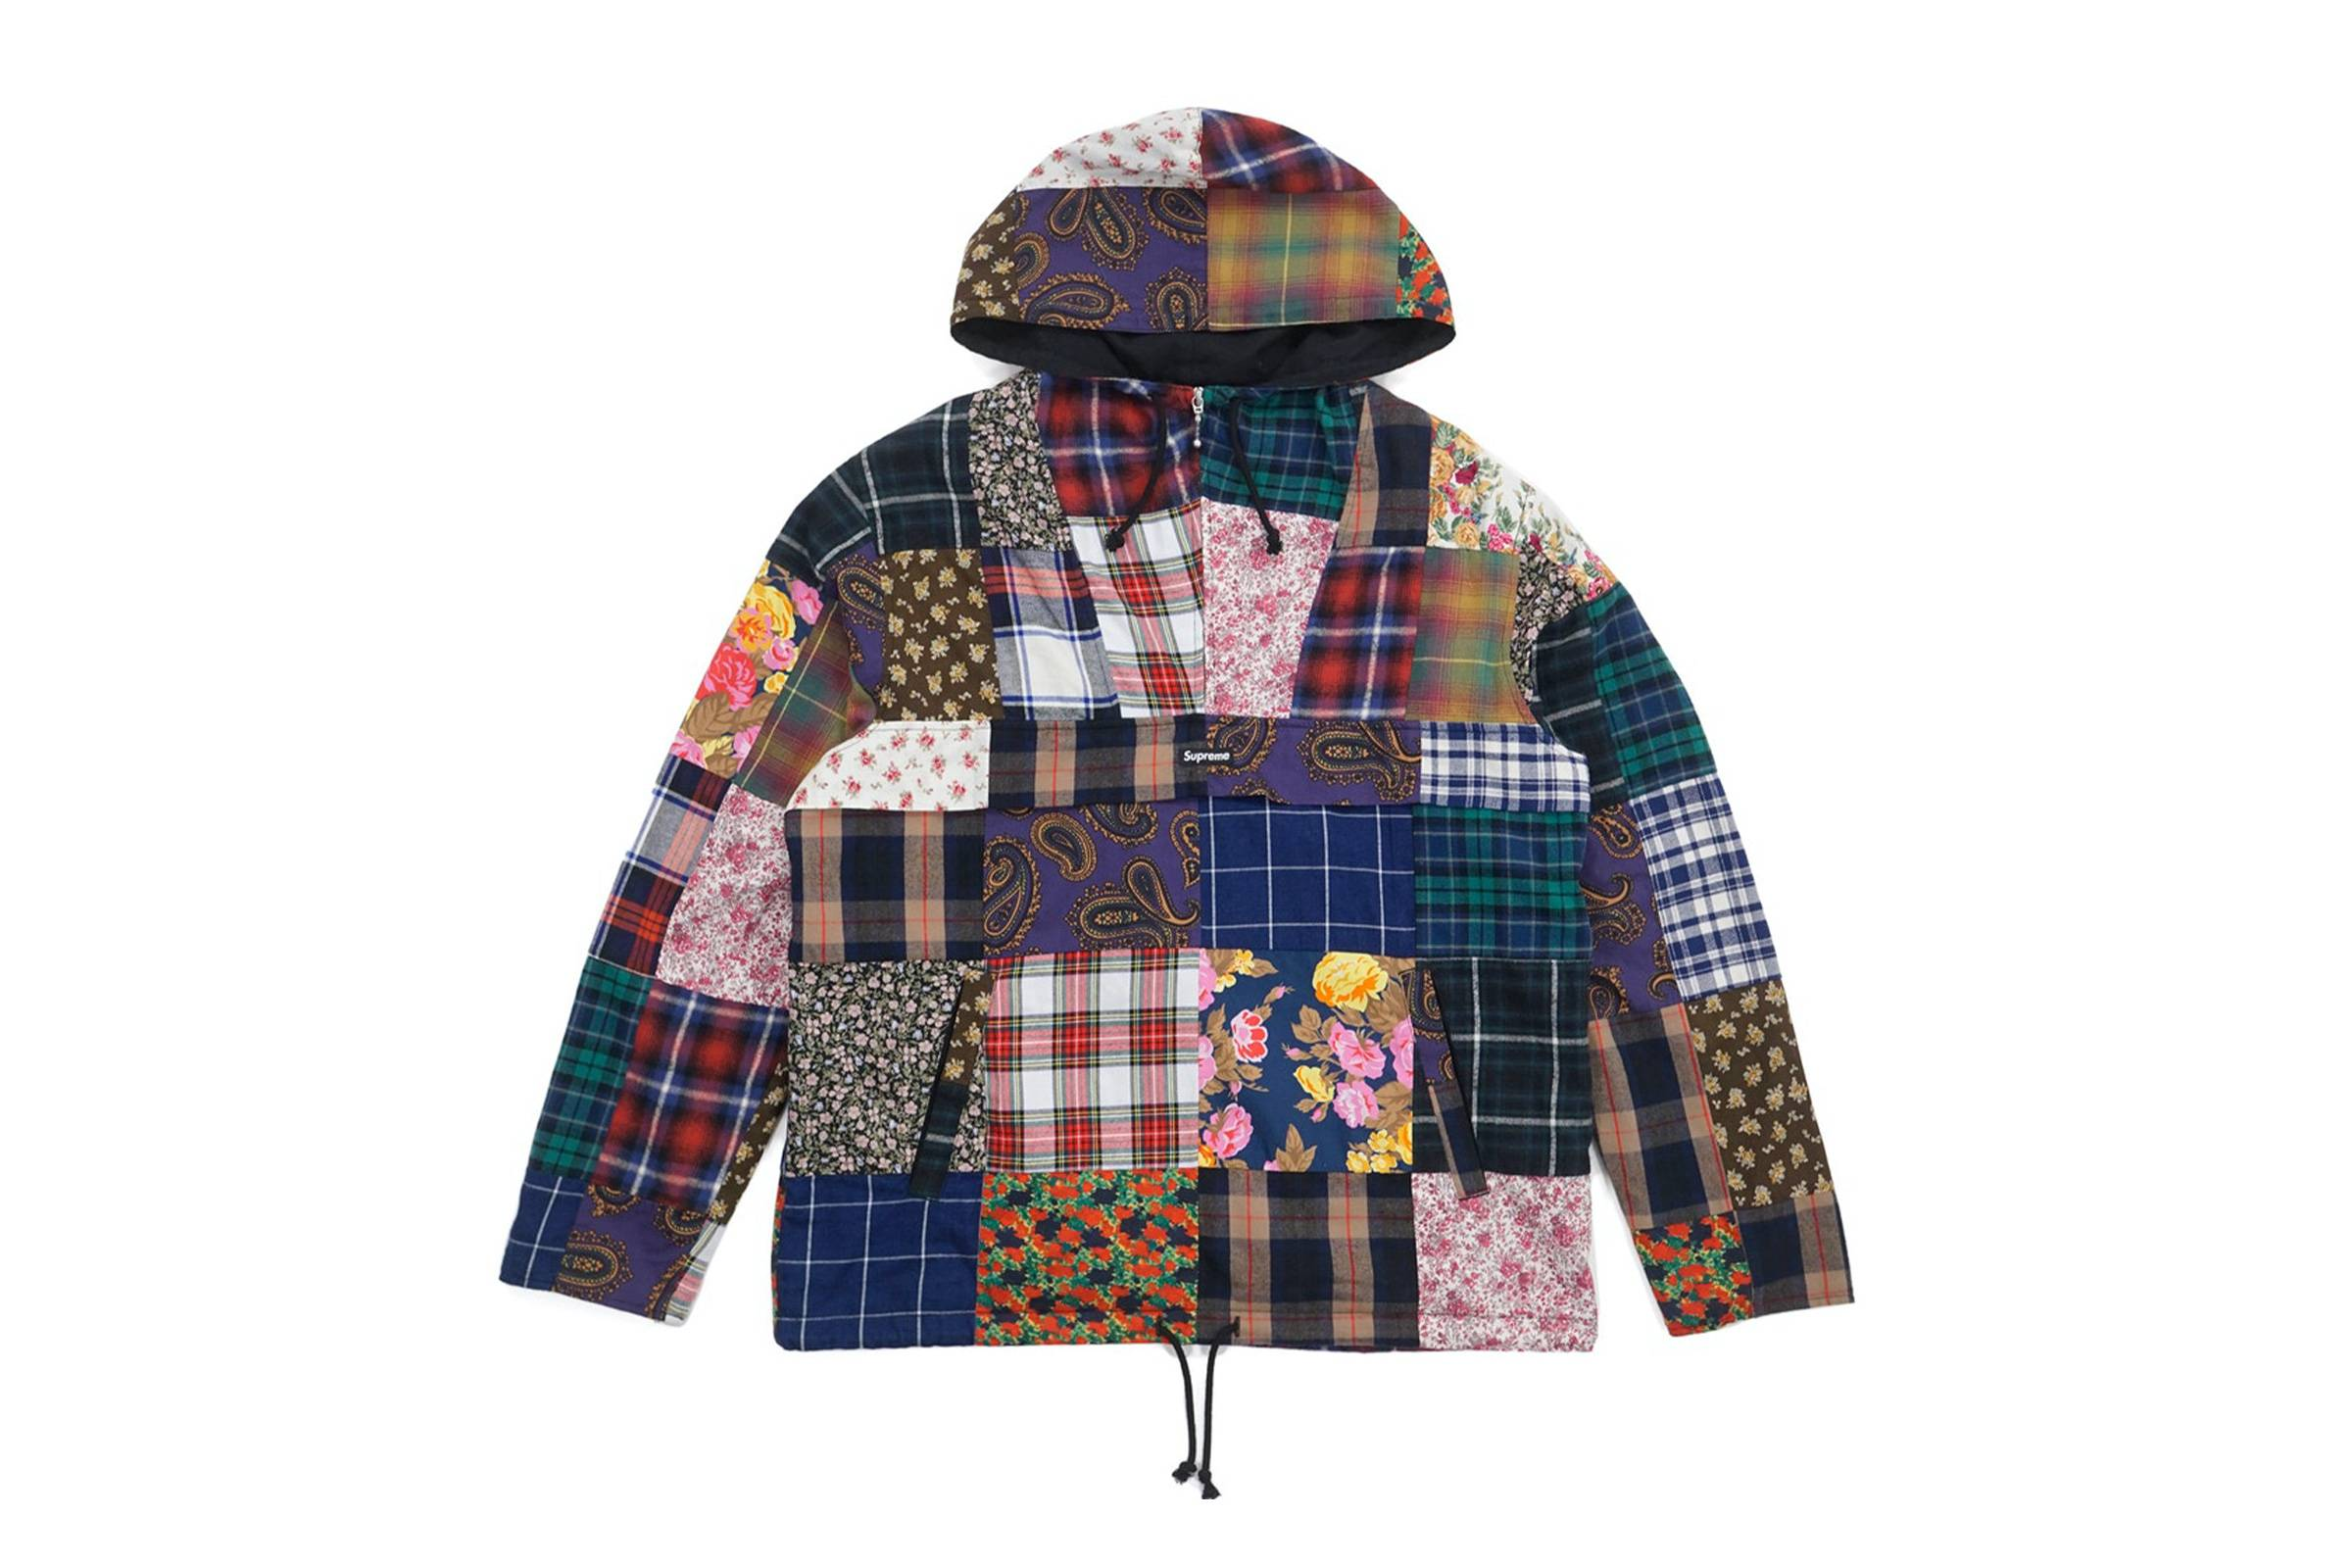 Supreme Fall/Winter 2016 Patchwork Jacket